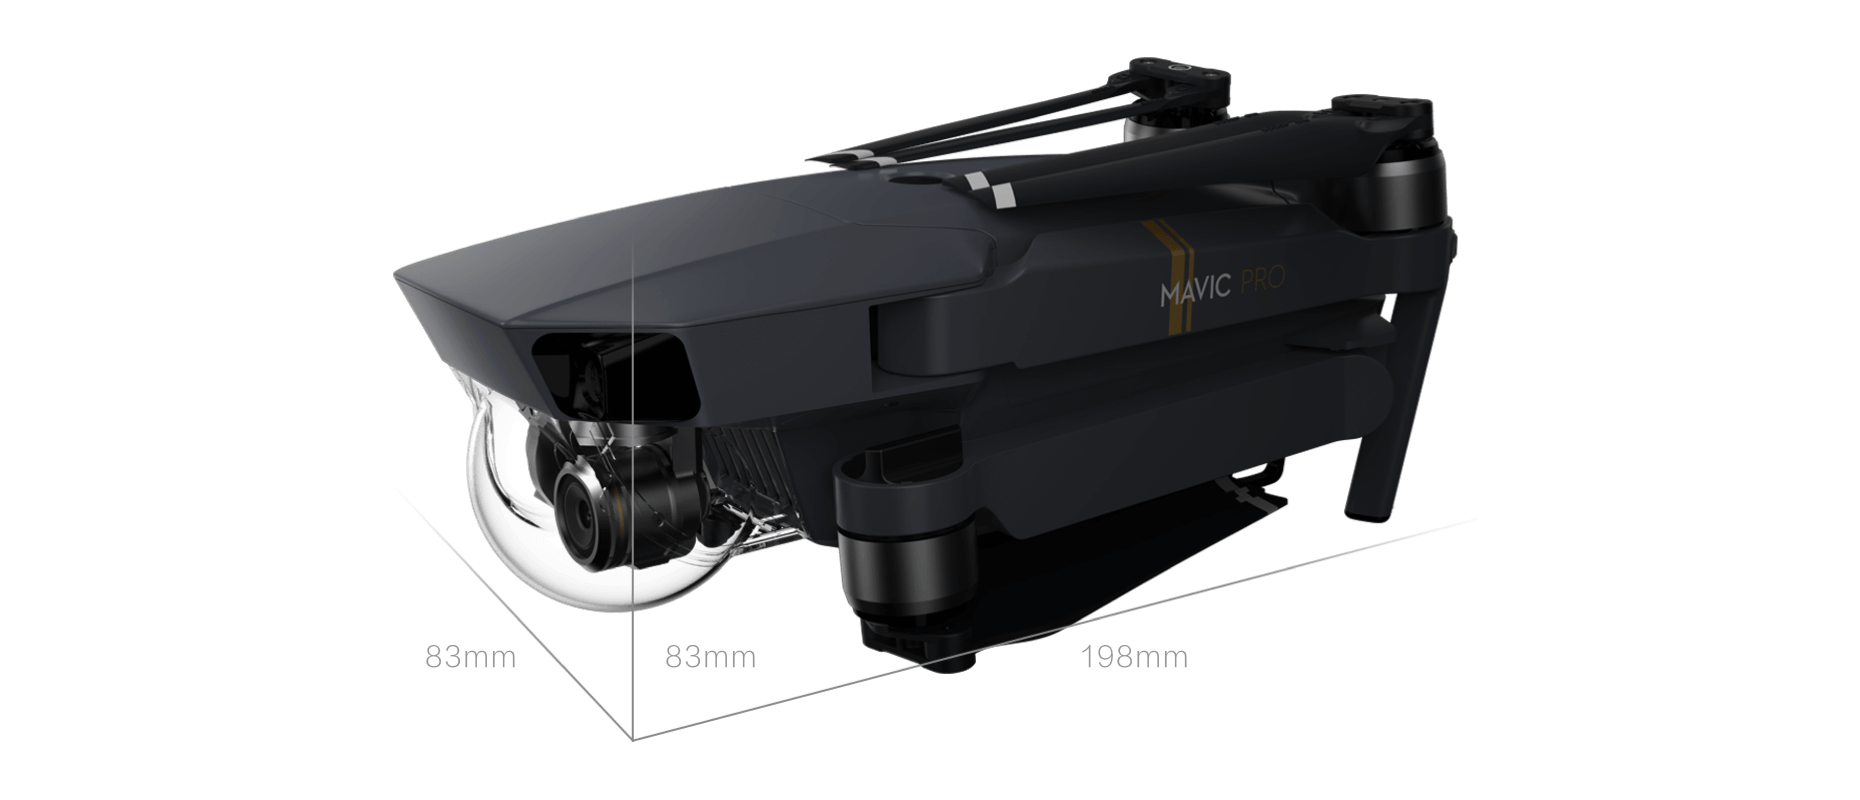 DJI Mavic Sizes